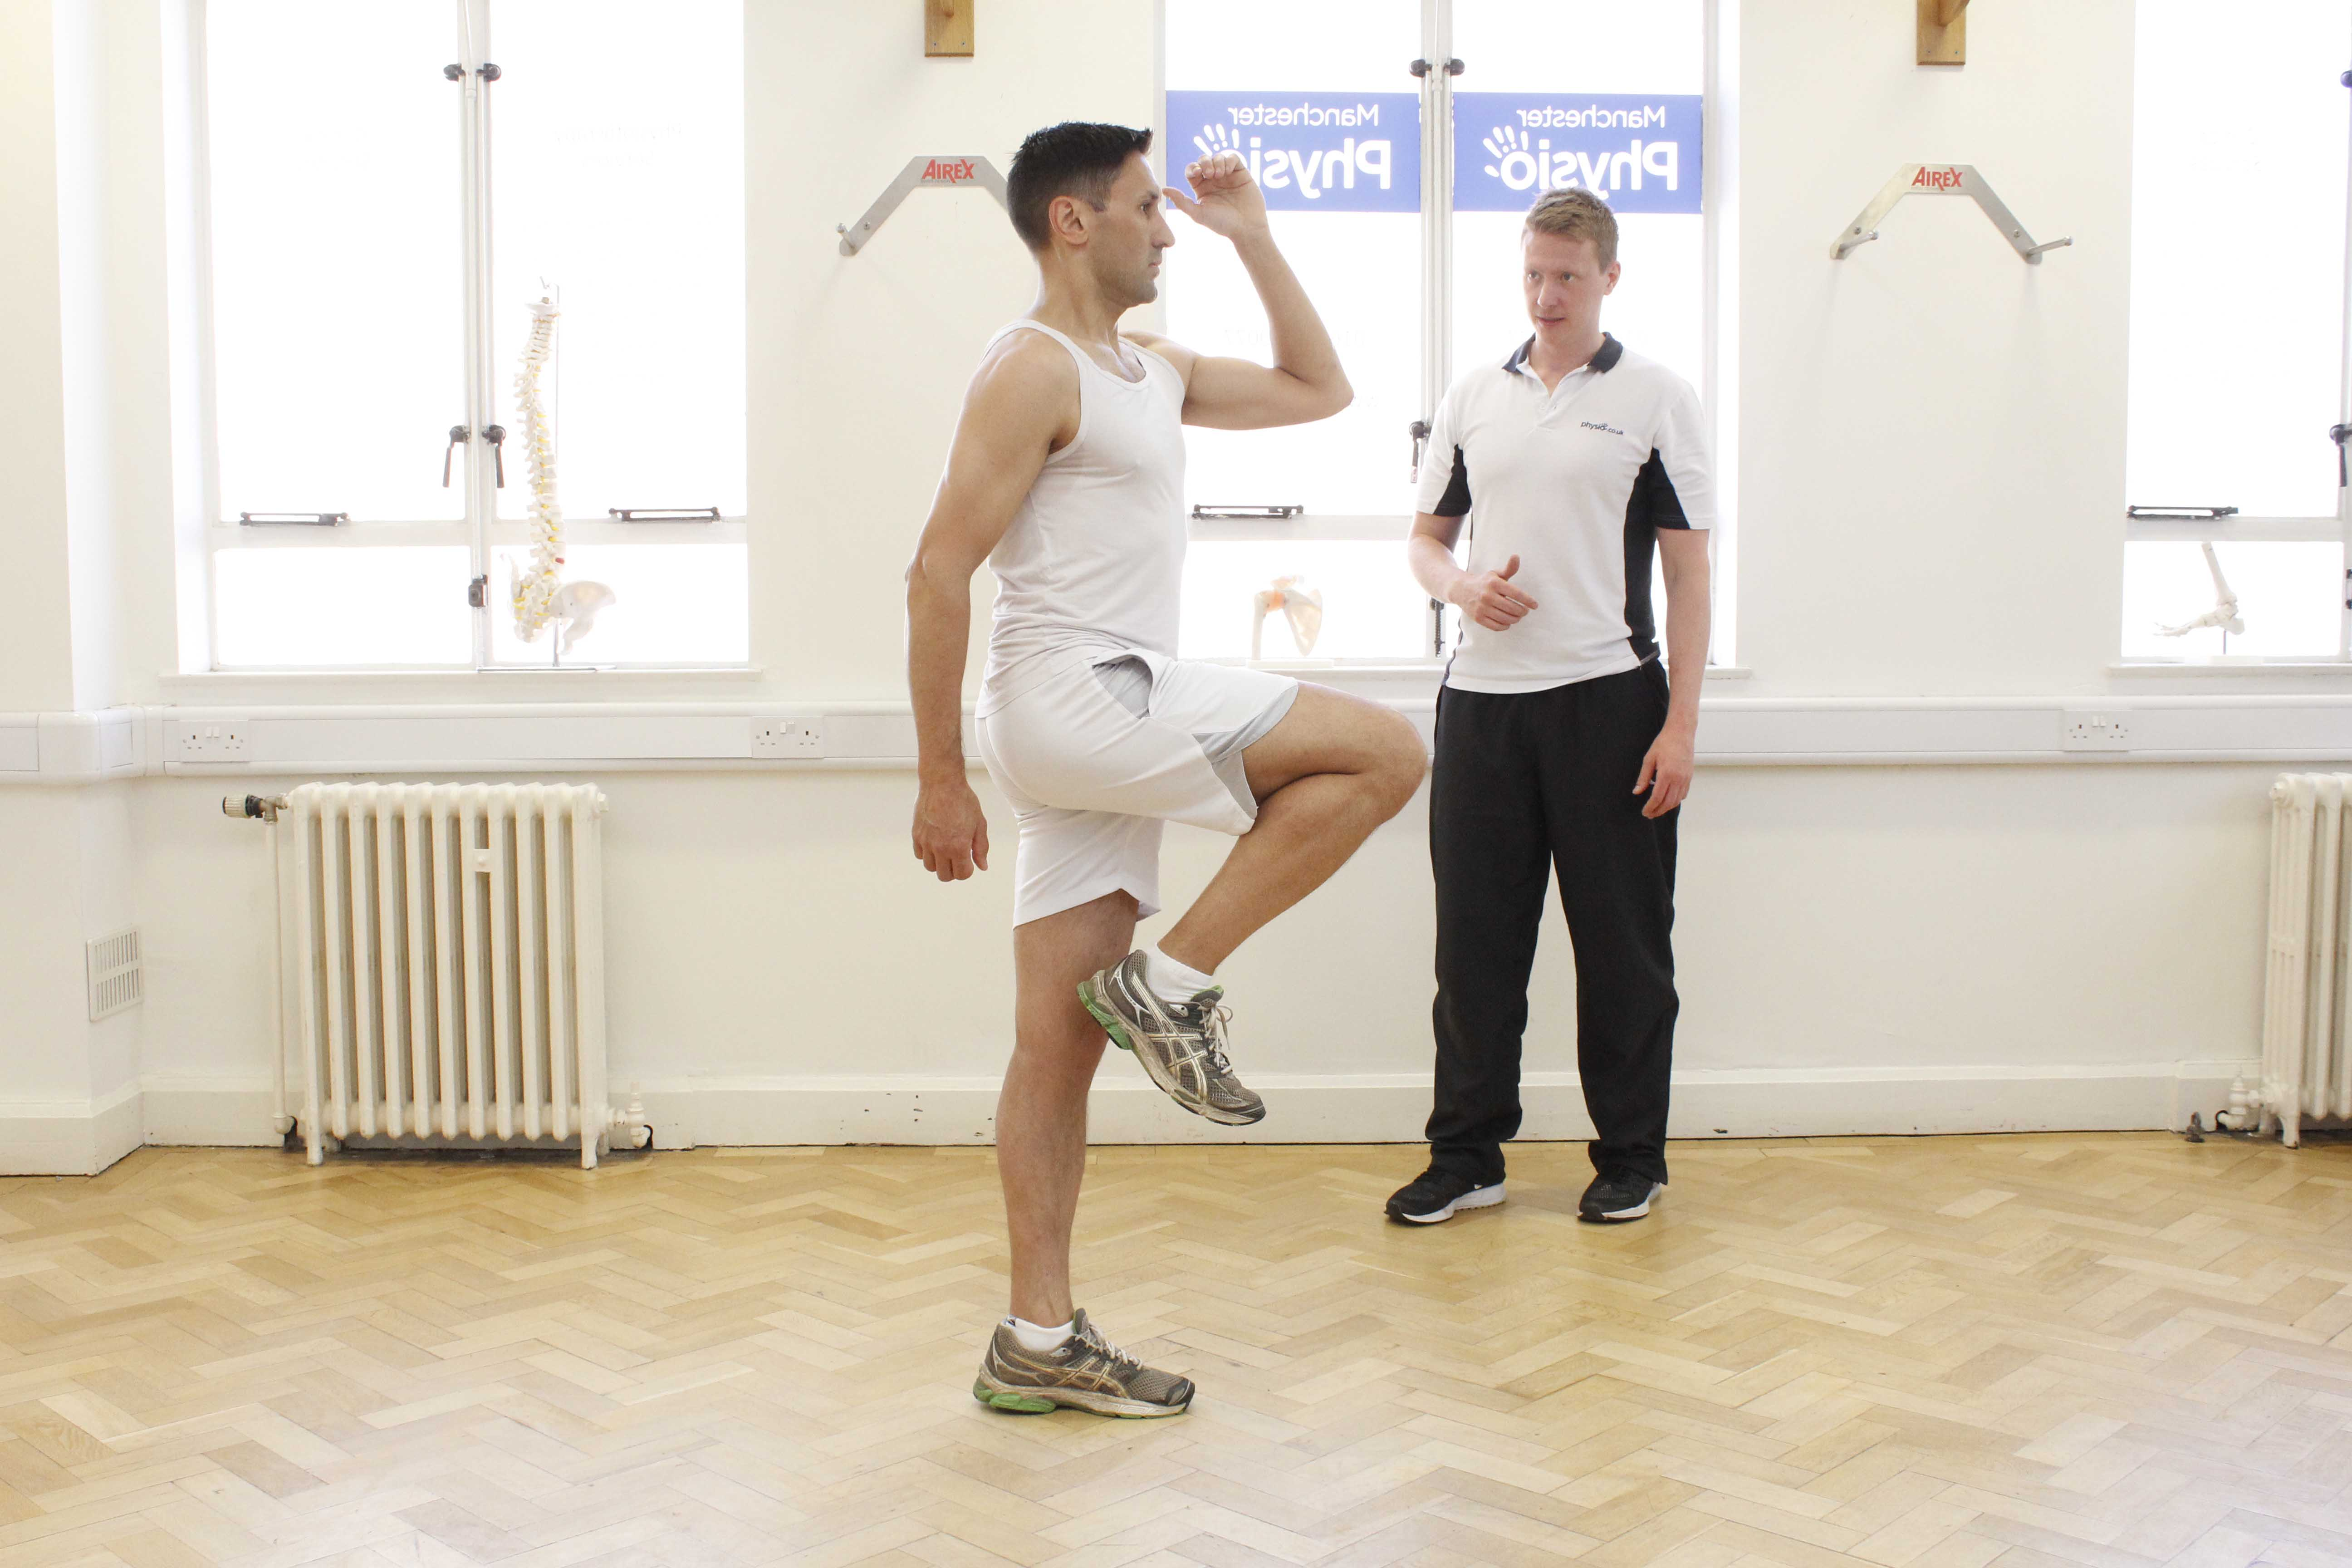 Functional movement assessment led by physiotherapist